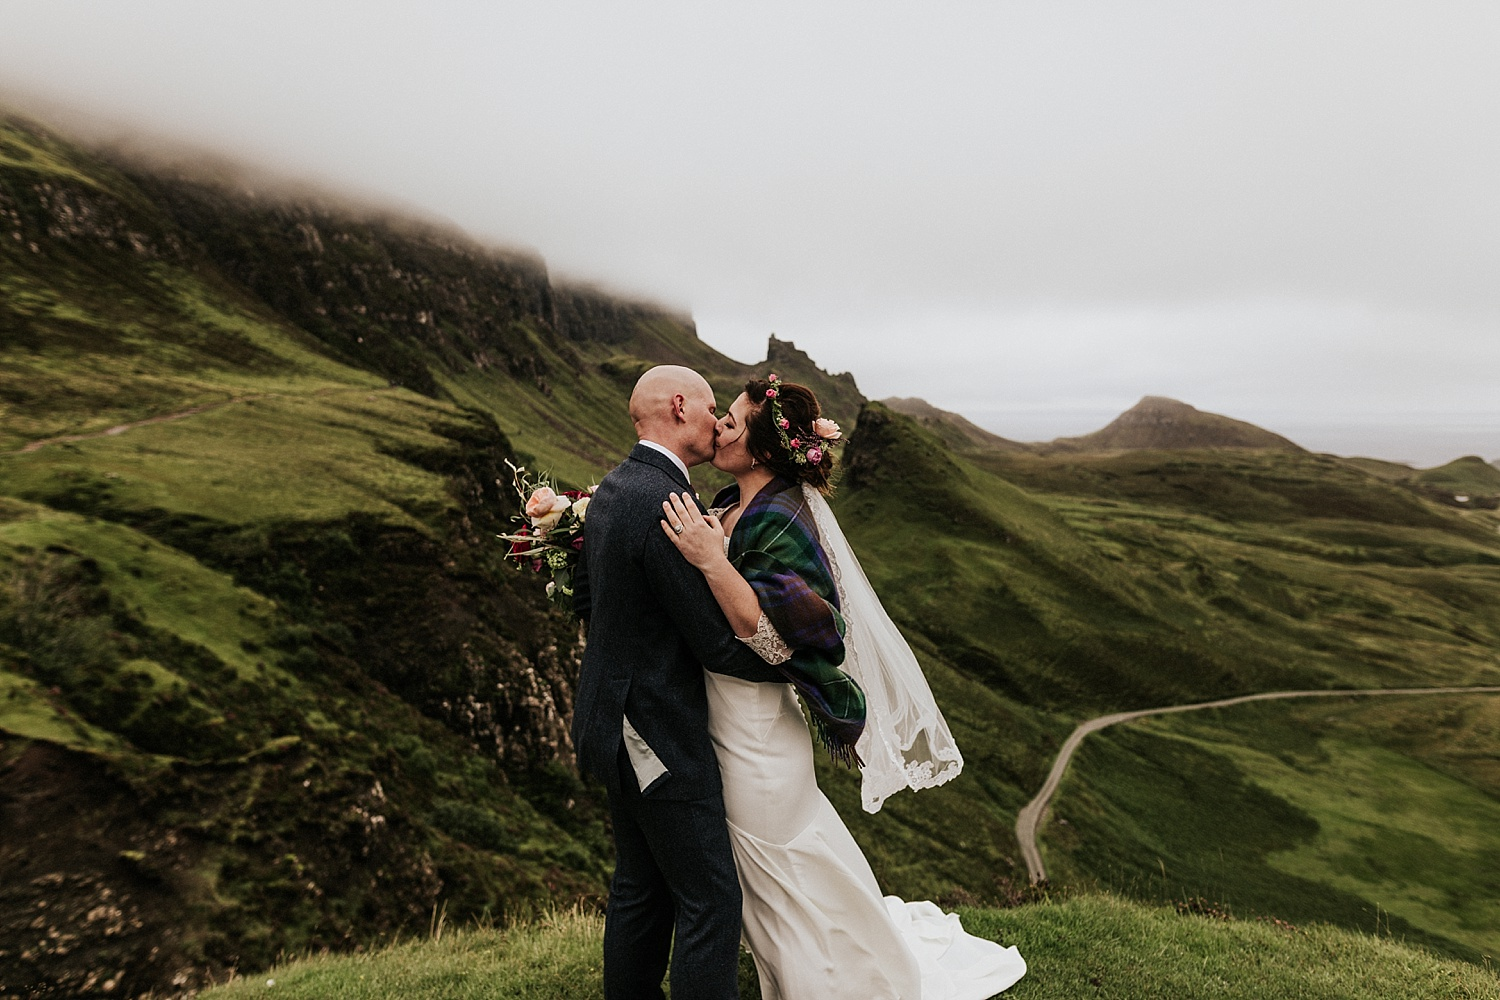 Cat + Matt | Isle of Skye | Elopement Photo + Video